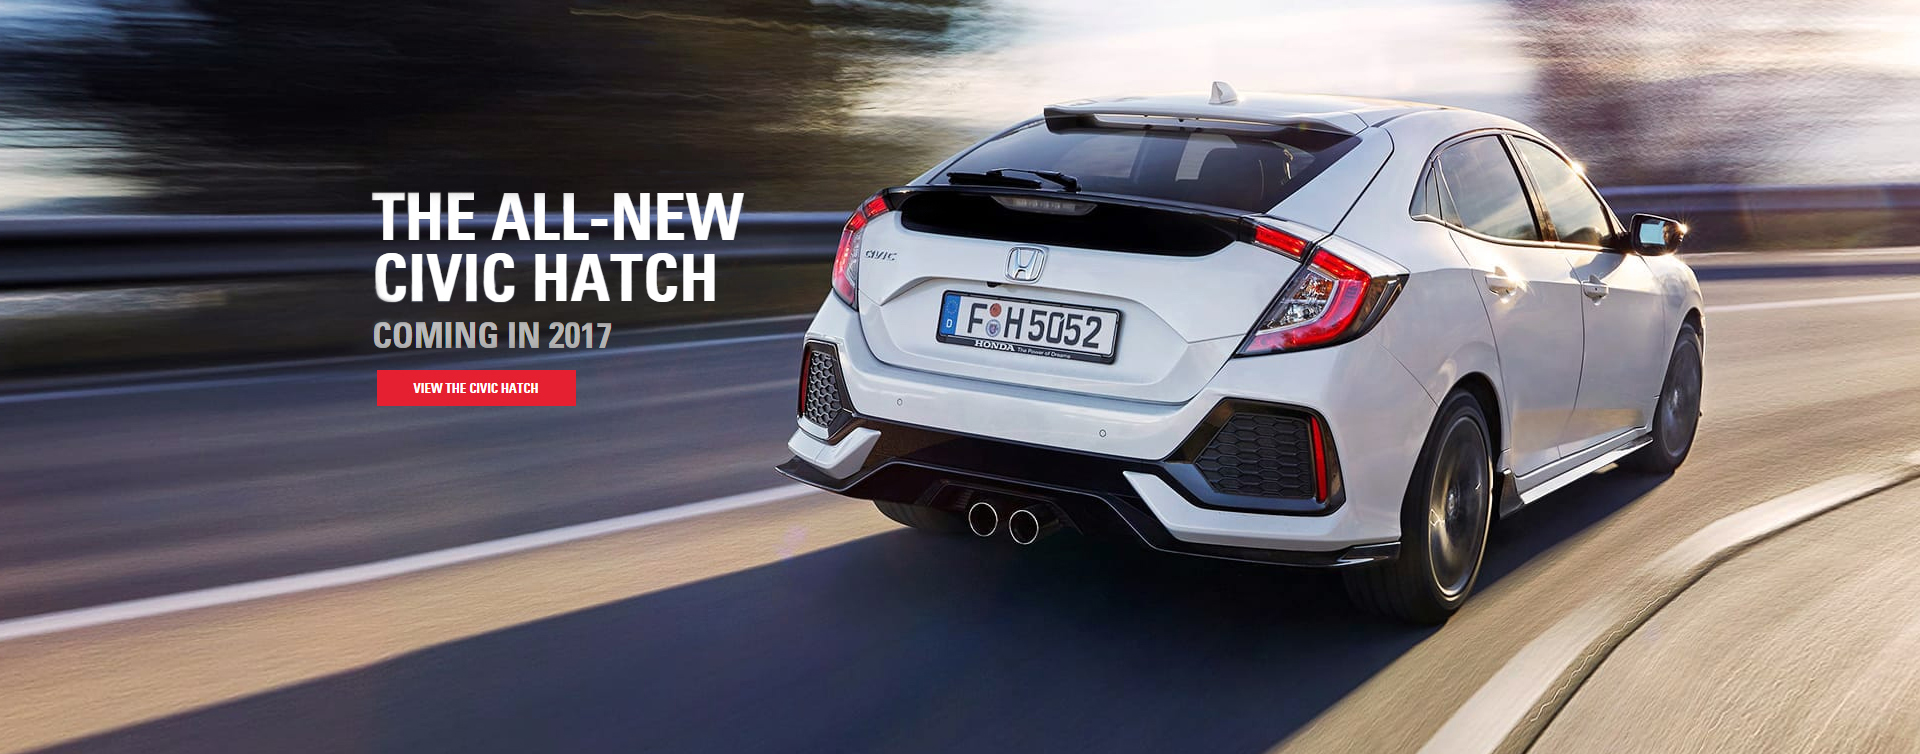 The all-new 2017 Civic Hatch coming soon to Northside Honda Brisbane.